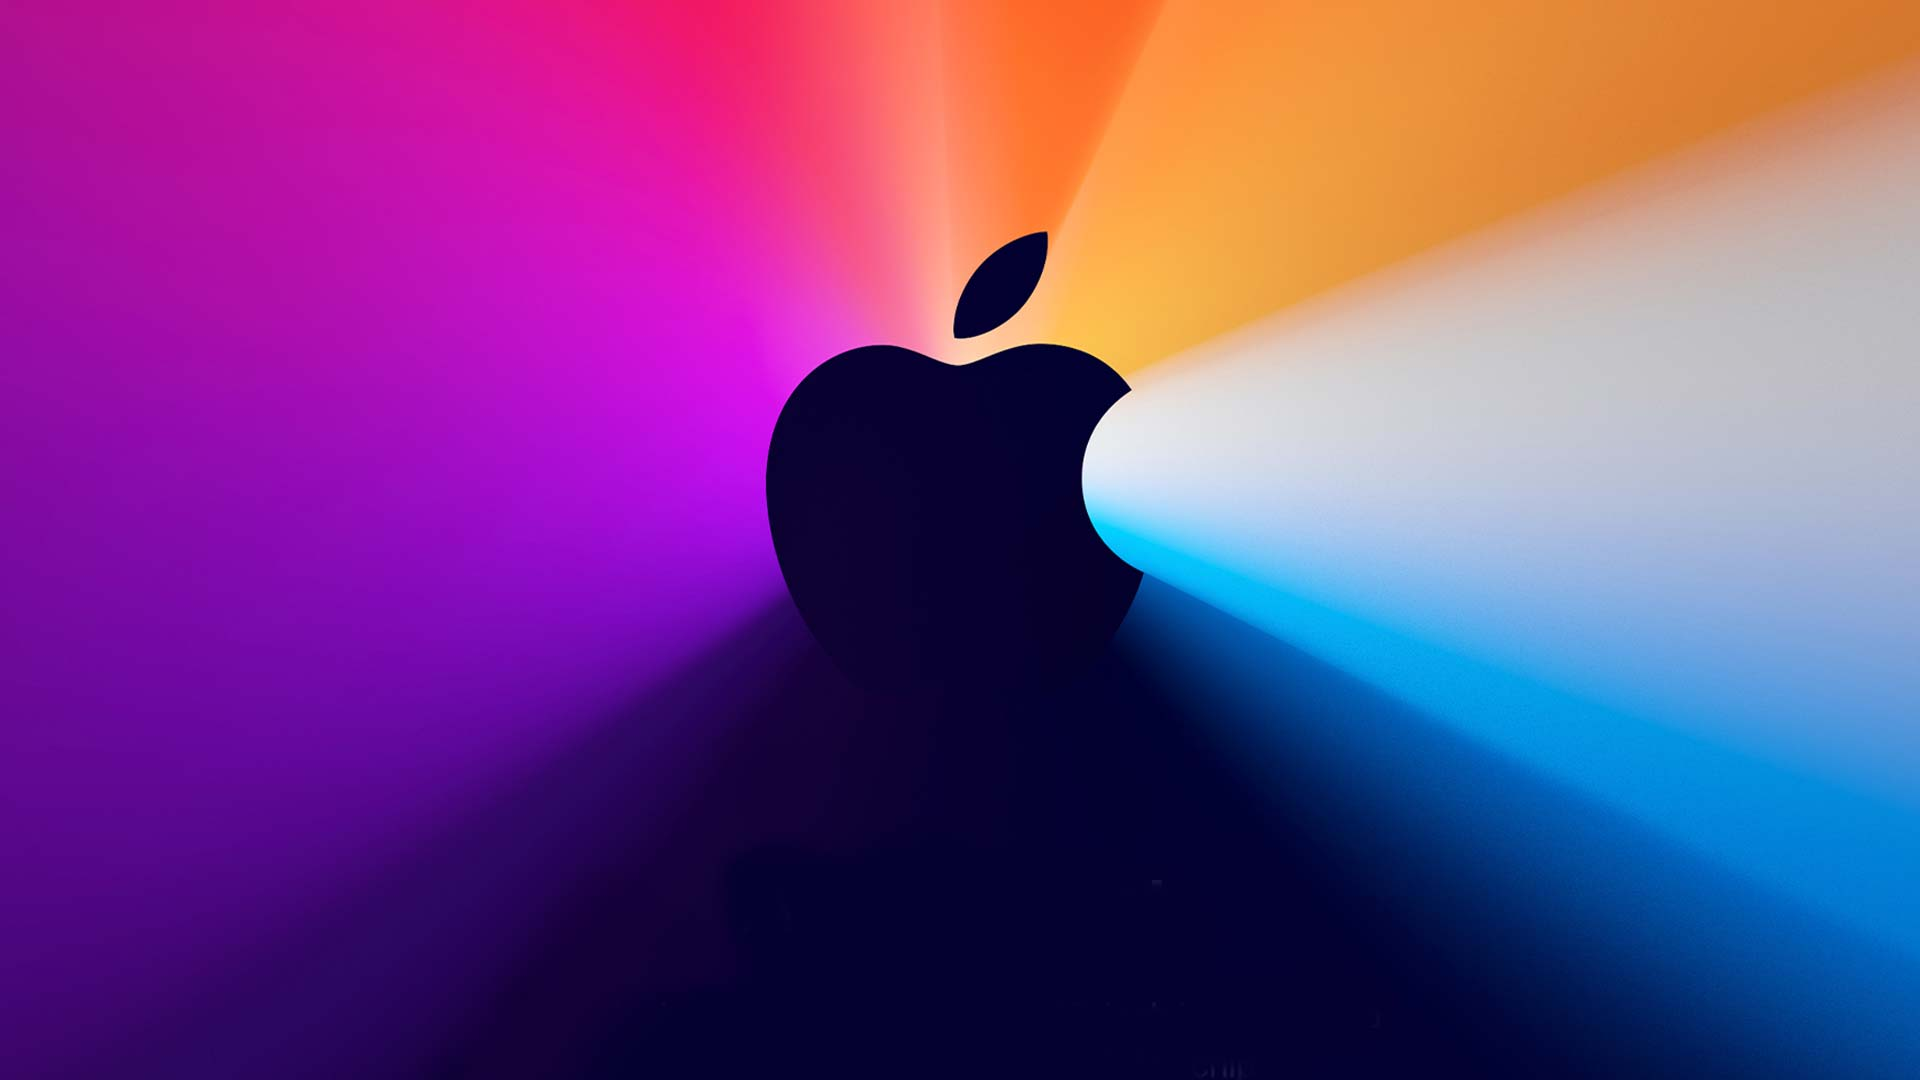 Apple Spring Loaded Launch Event New iPad Pro iMac Airtag to be launched today